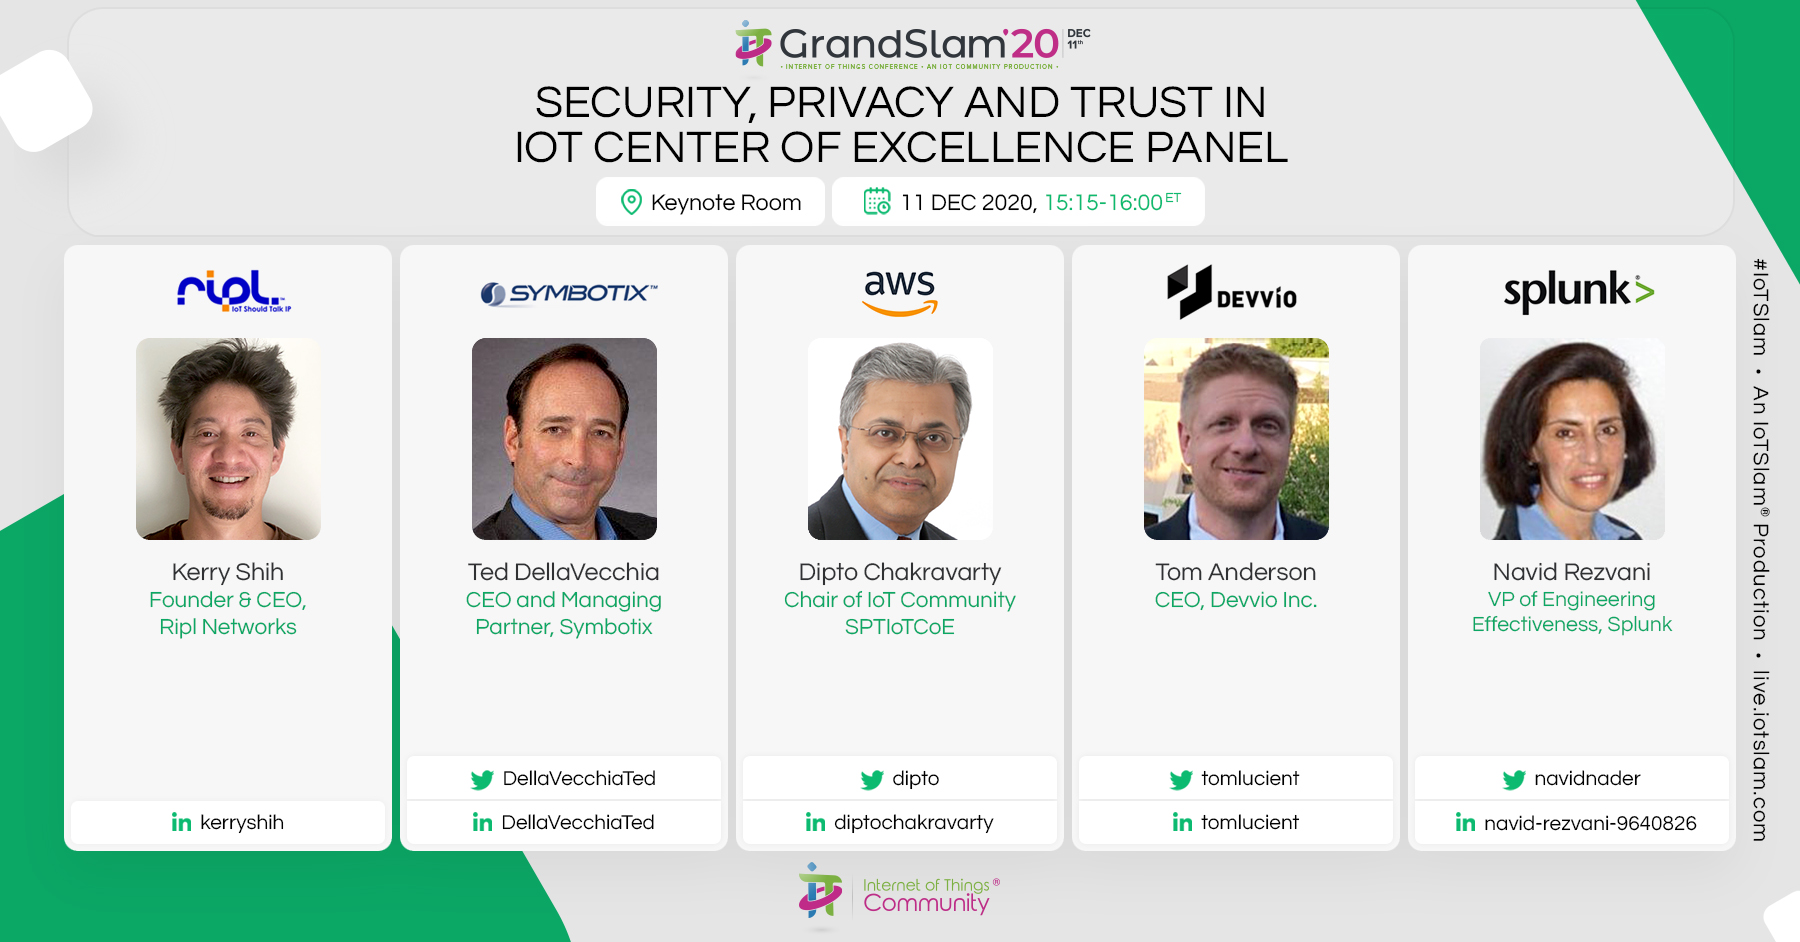 Security, Privacy and Trust in IoT Center of Excellence Panel